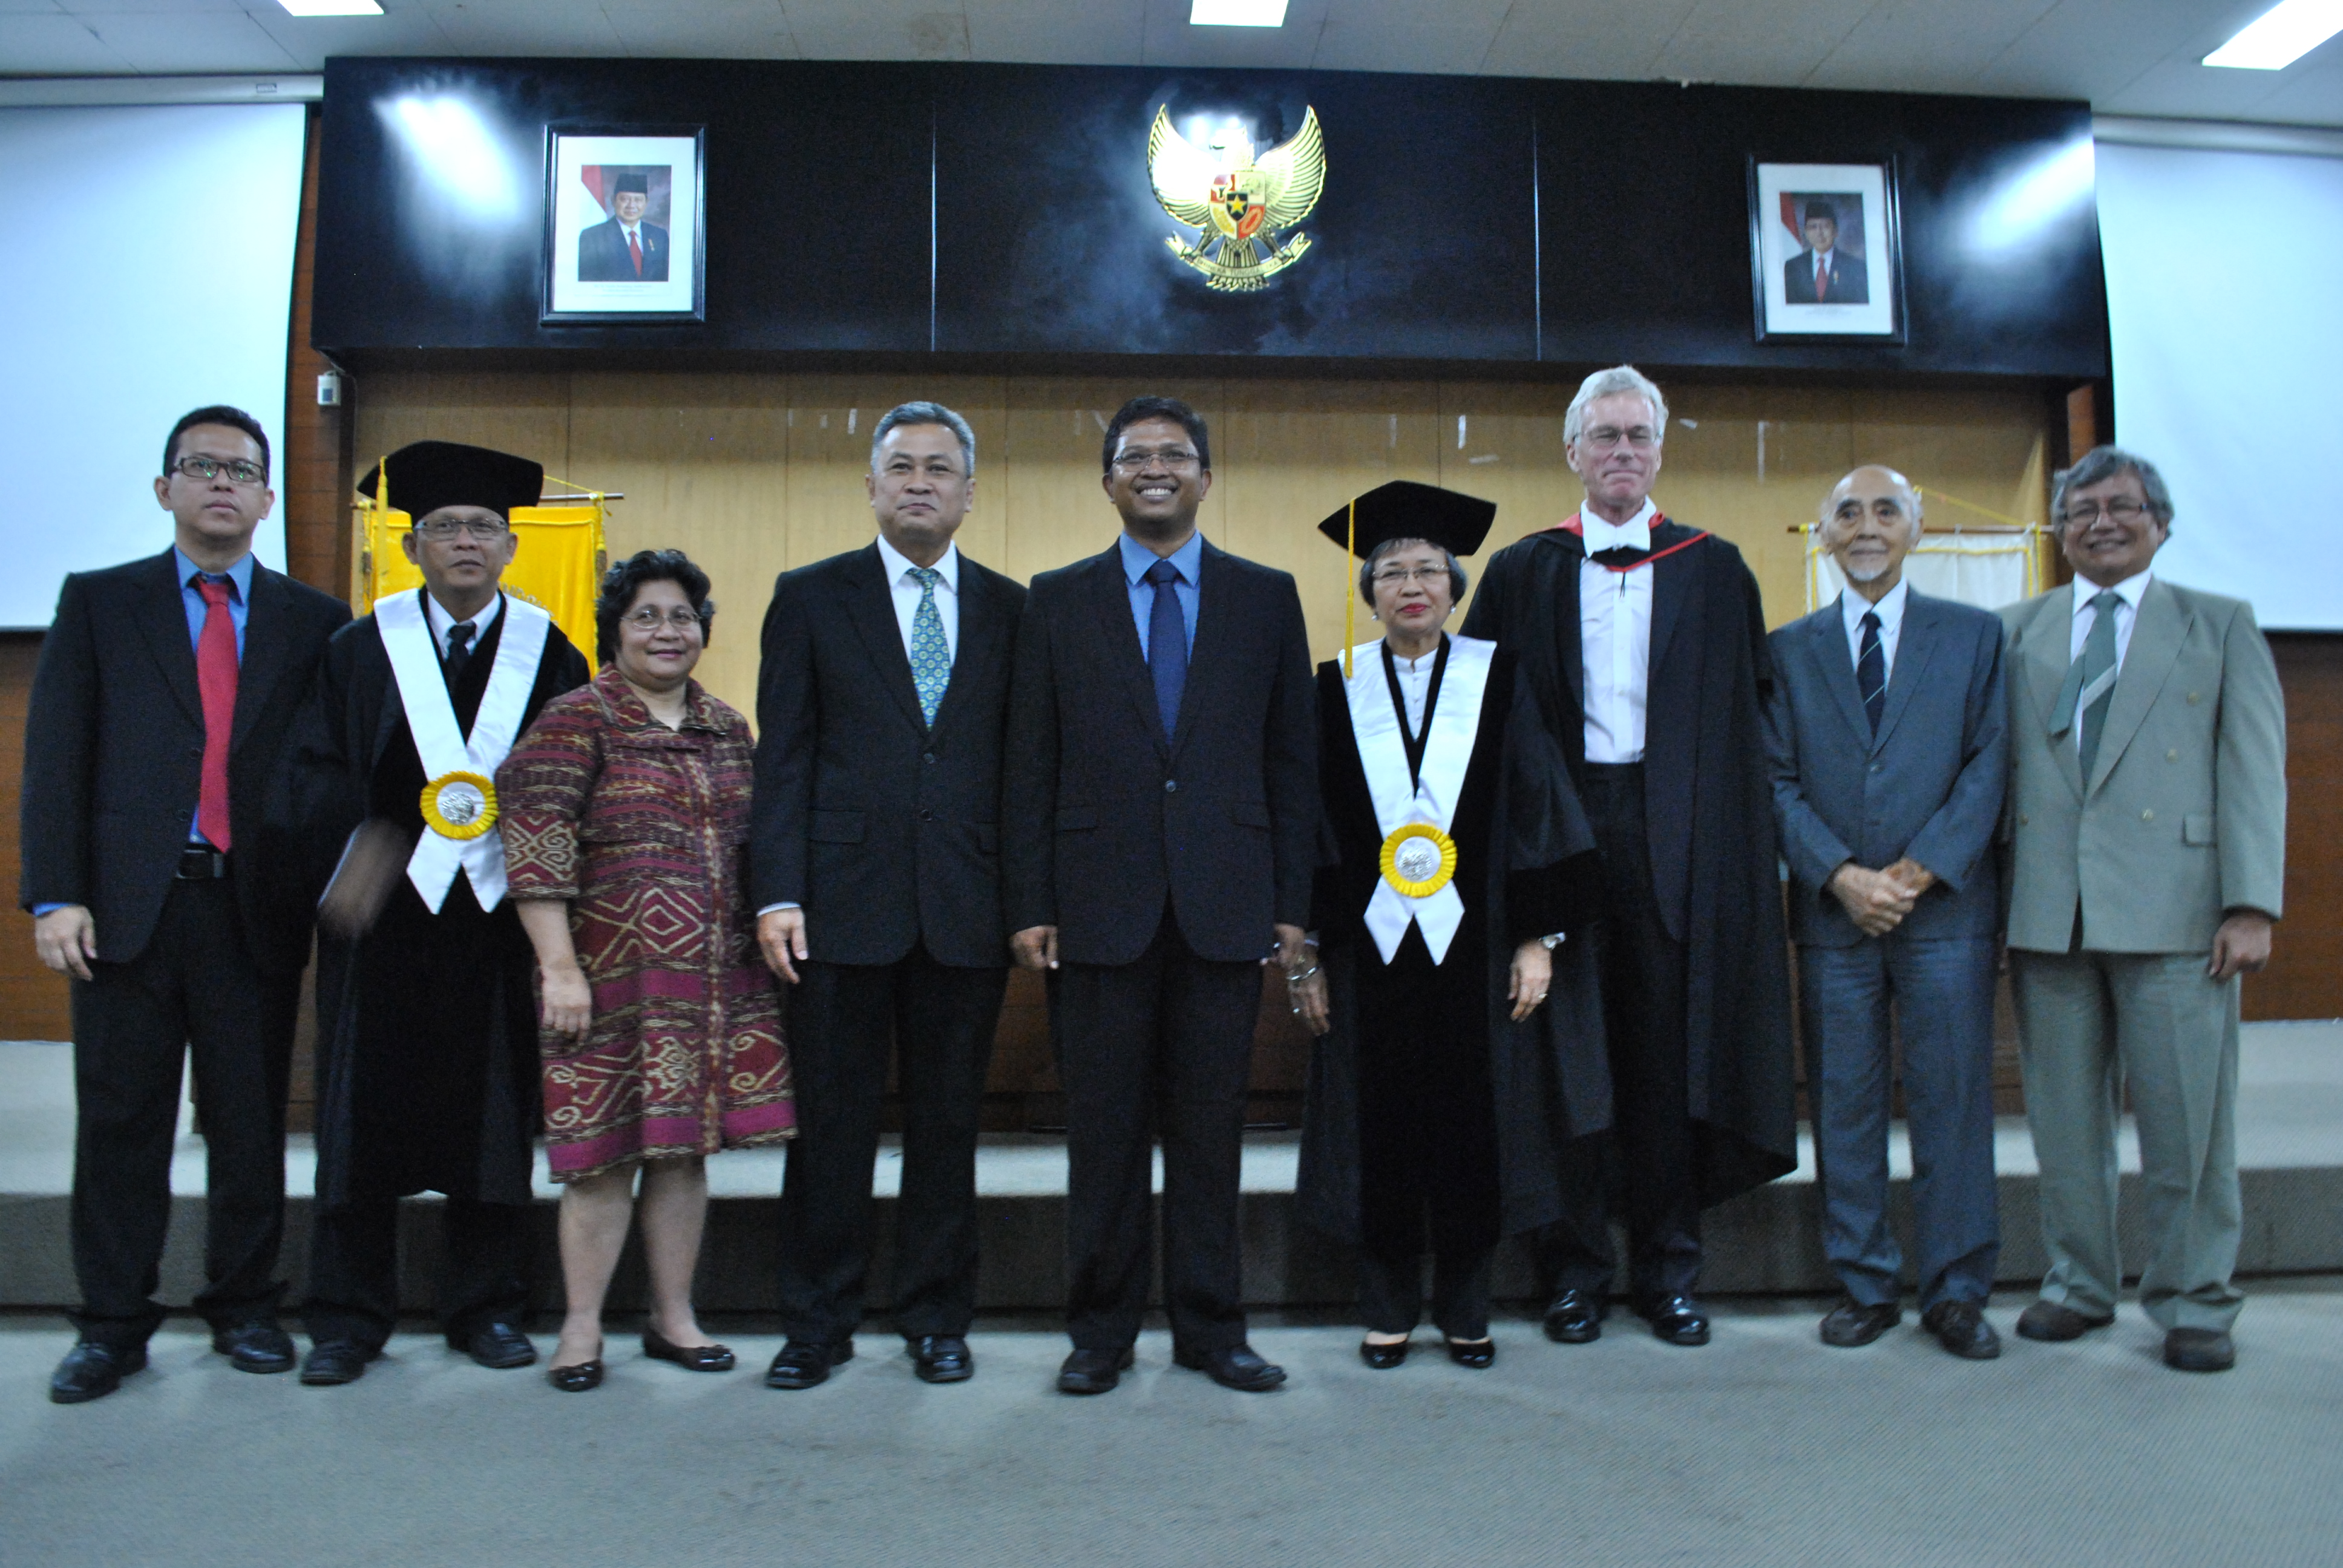 Peter Carey Appointed as Adjunct Professor at the Faculty of Humanities, University of Indonesia